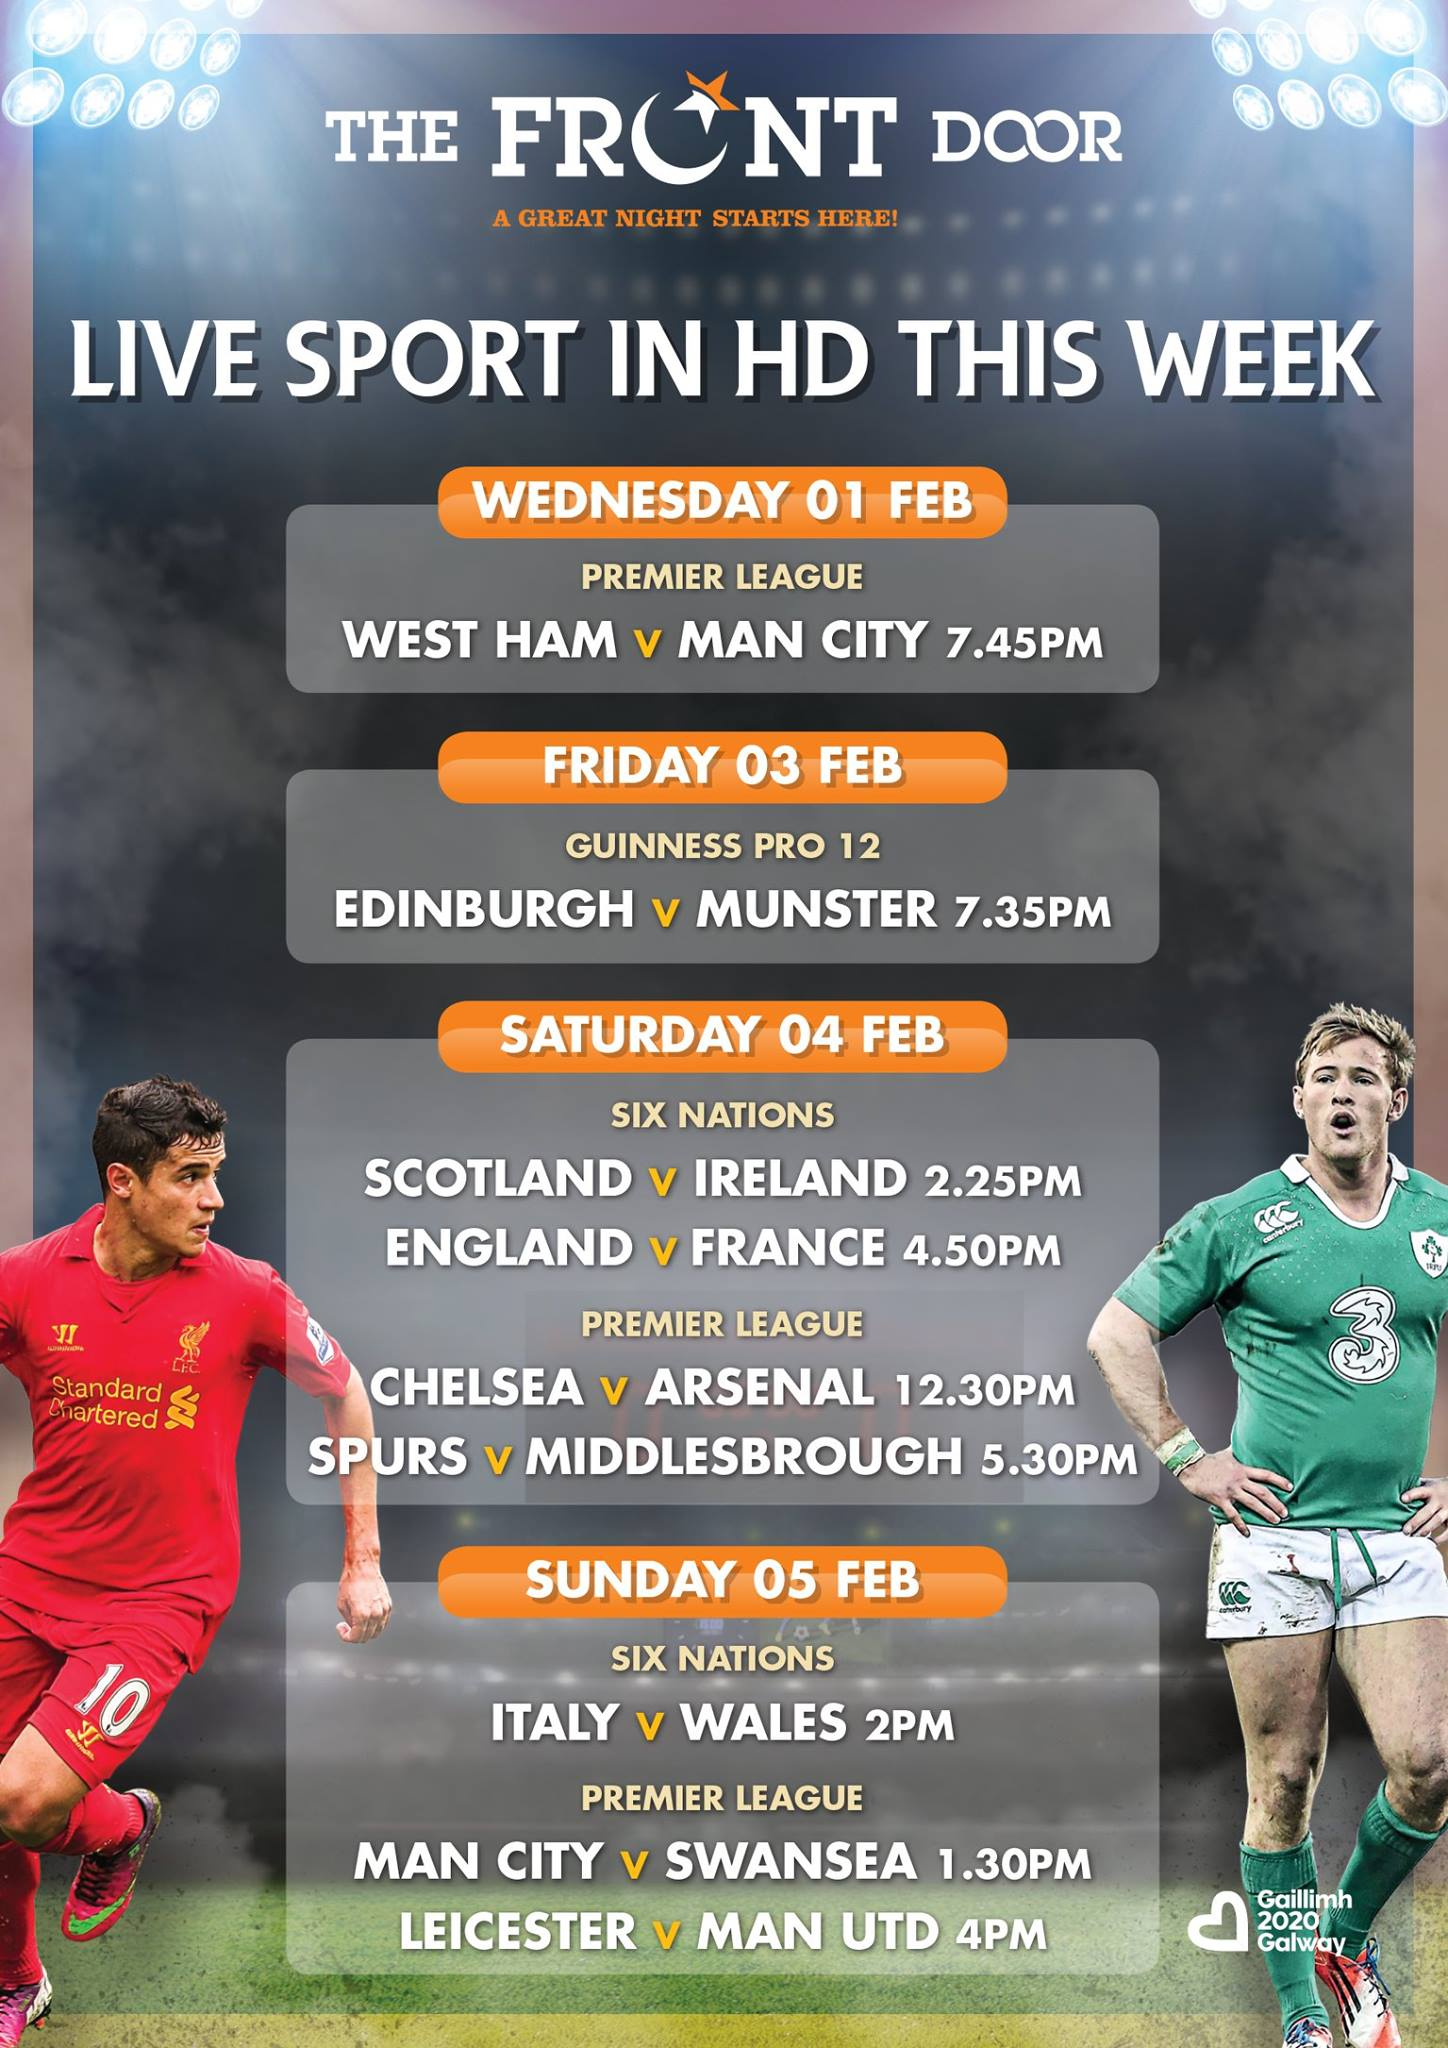 Live Sport in HD this week